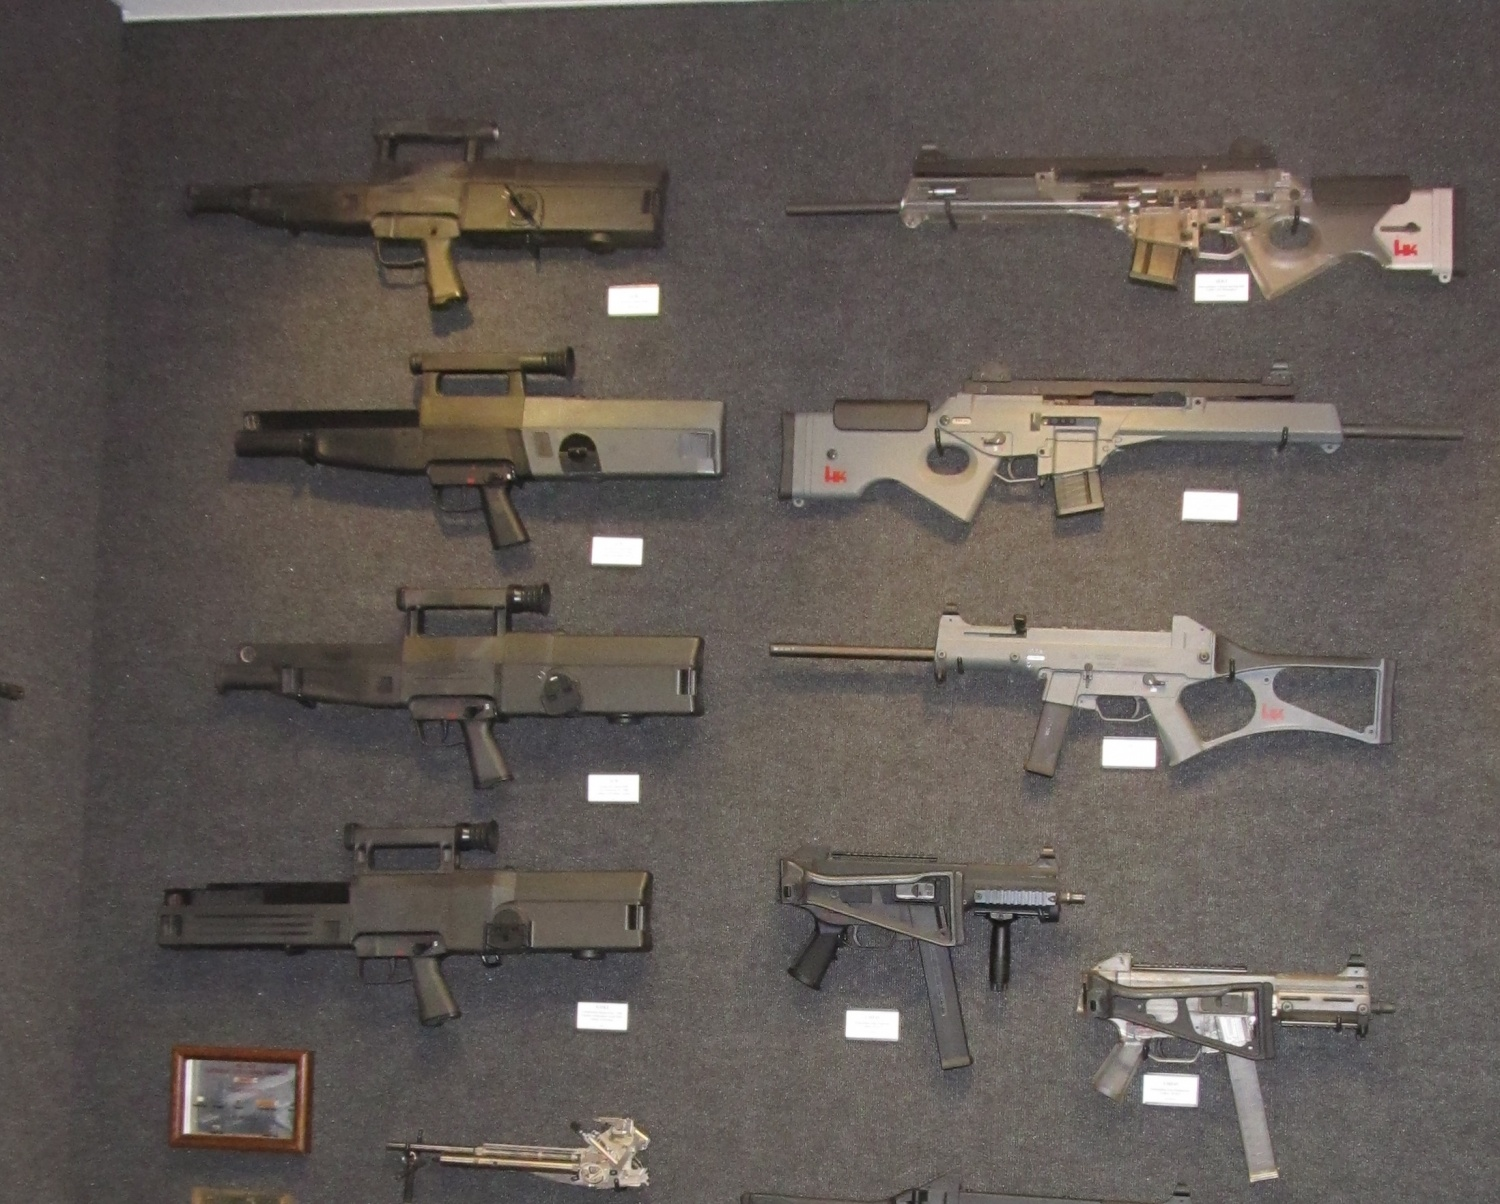 Some of the G11, SL8 and UMP prototypes. Notice the cutaway version of the SL8 and the various designs of the G11 from a shorter length to a rifle sized version. Technology so ahead of its time that even today we don't know where caseless ammunition will proceed. It was also optically equipped, something that Western militaries consider as a standard in the 21st century but the G11 was almost thirty years ago when it was being tested.